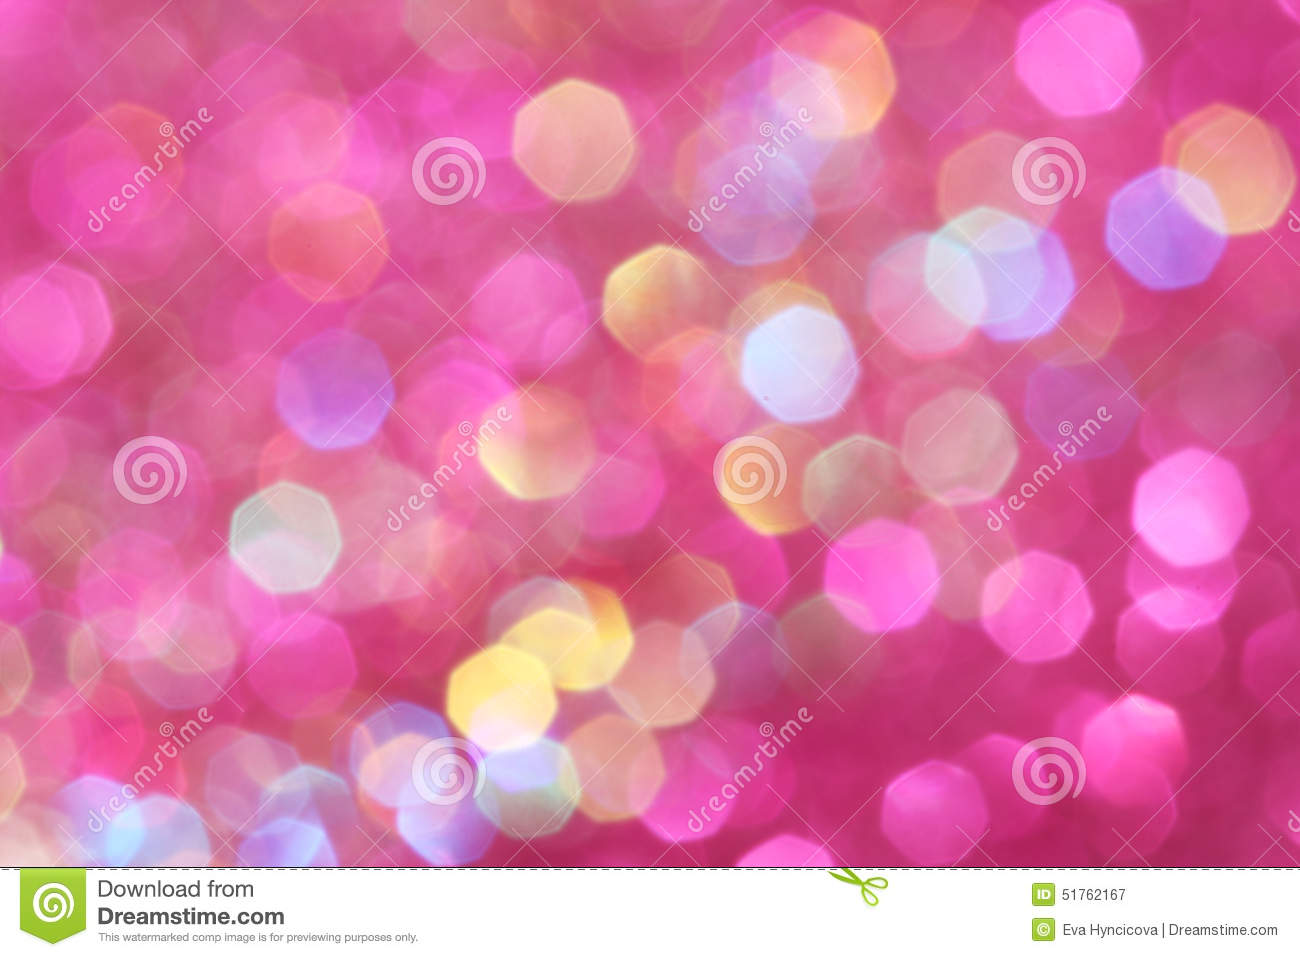 pink purple white yellow and turquoise soft lights abstract background royalty free stock